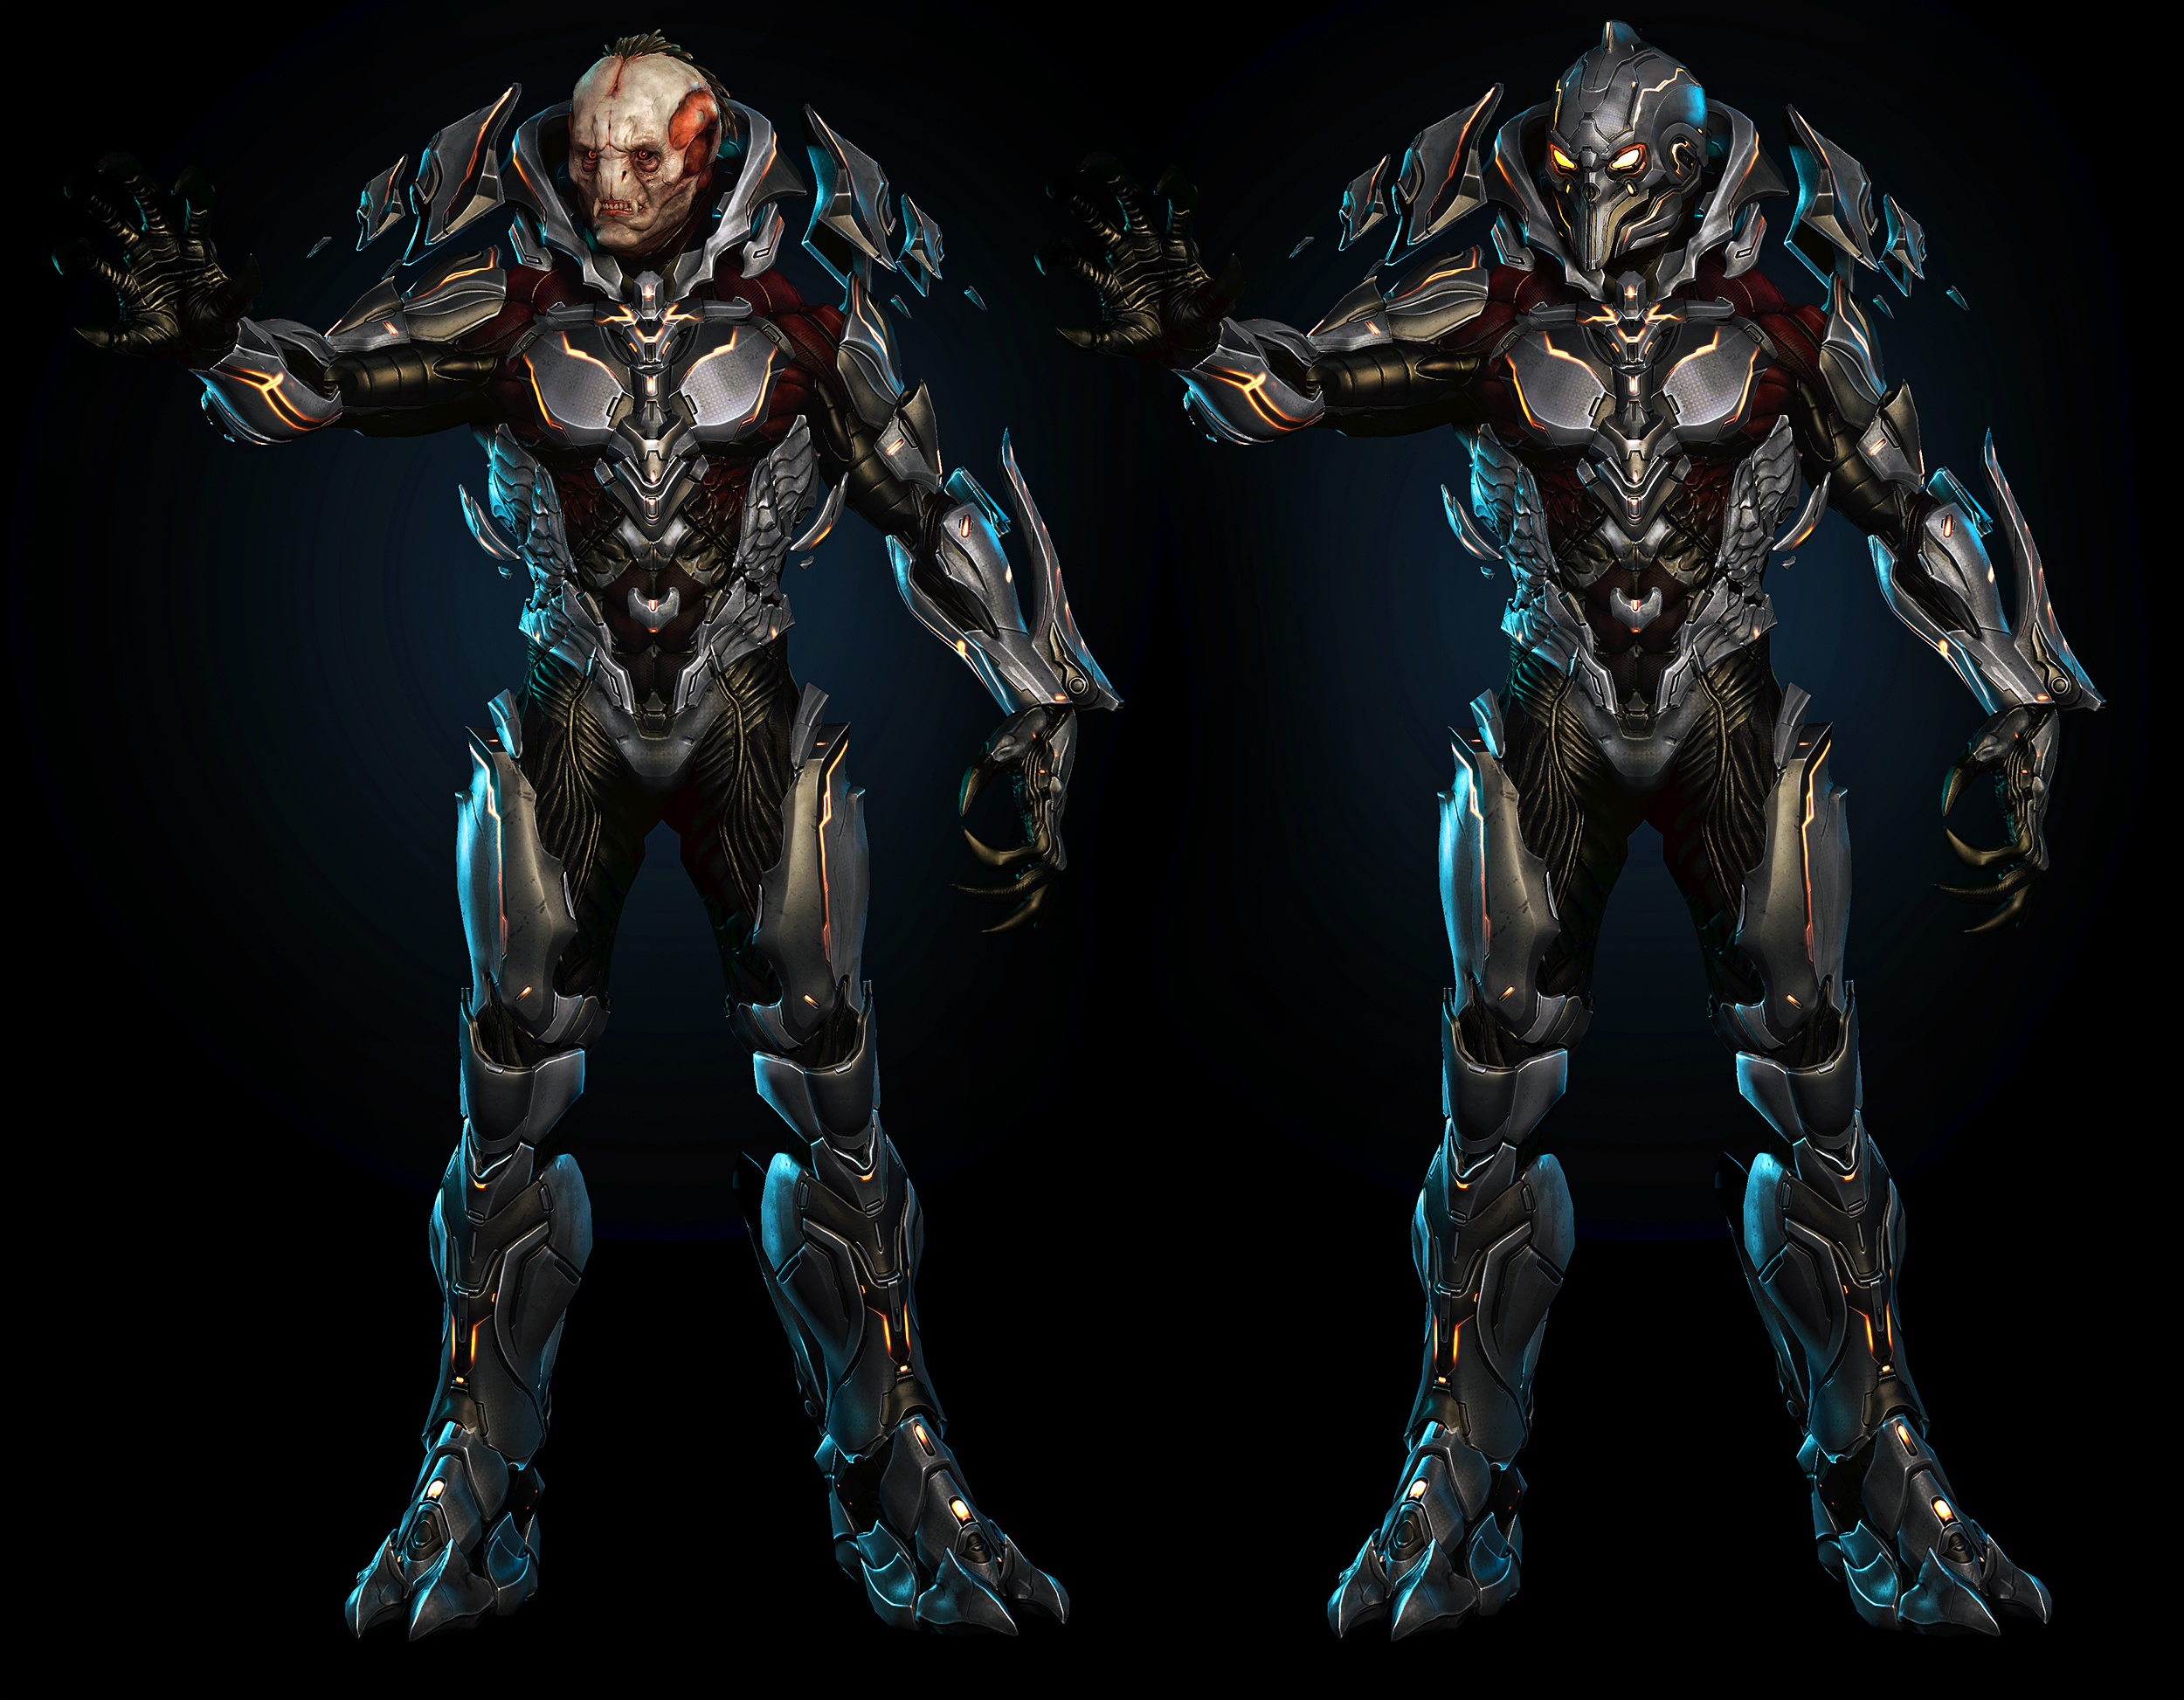 Votre reve de cosplay! - Page 7 Halo-4-didact-kolby-jukes